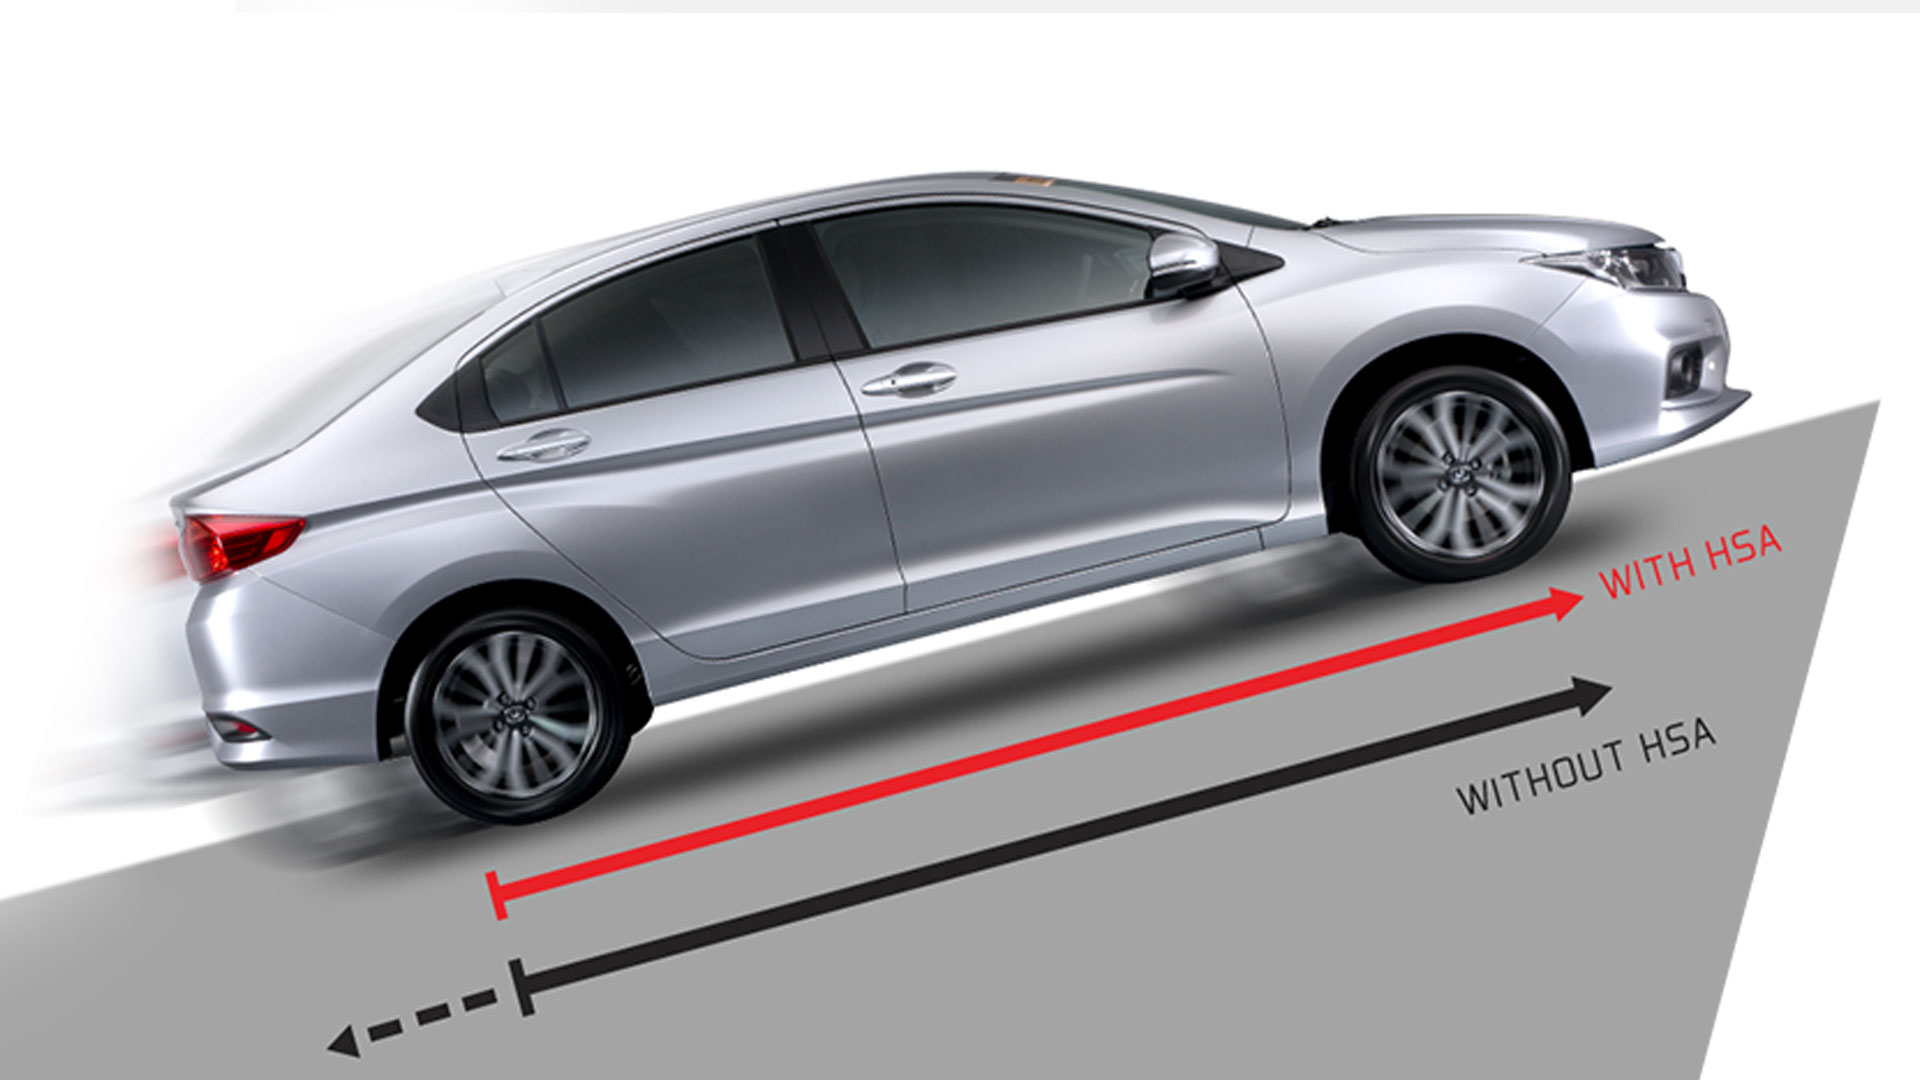 hight resolution of the honda city makes no compromise when it comes to occupant safety with an array of safety features that ultimately give you confidence and peace of mind